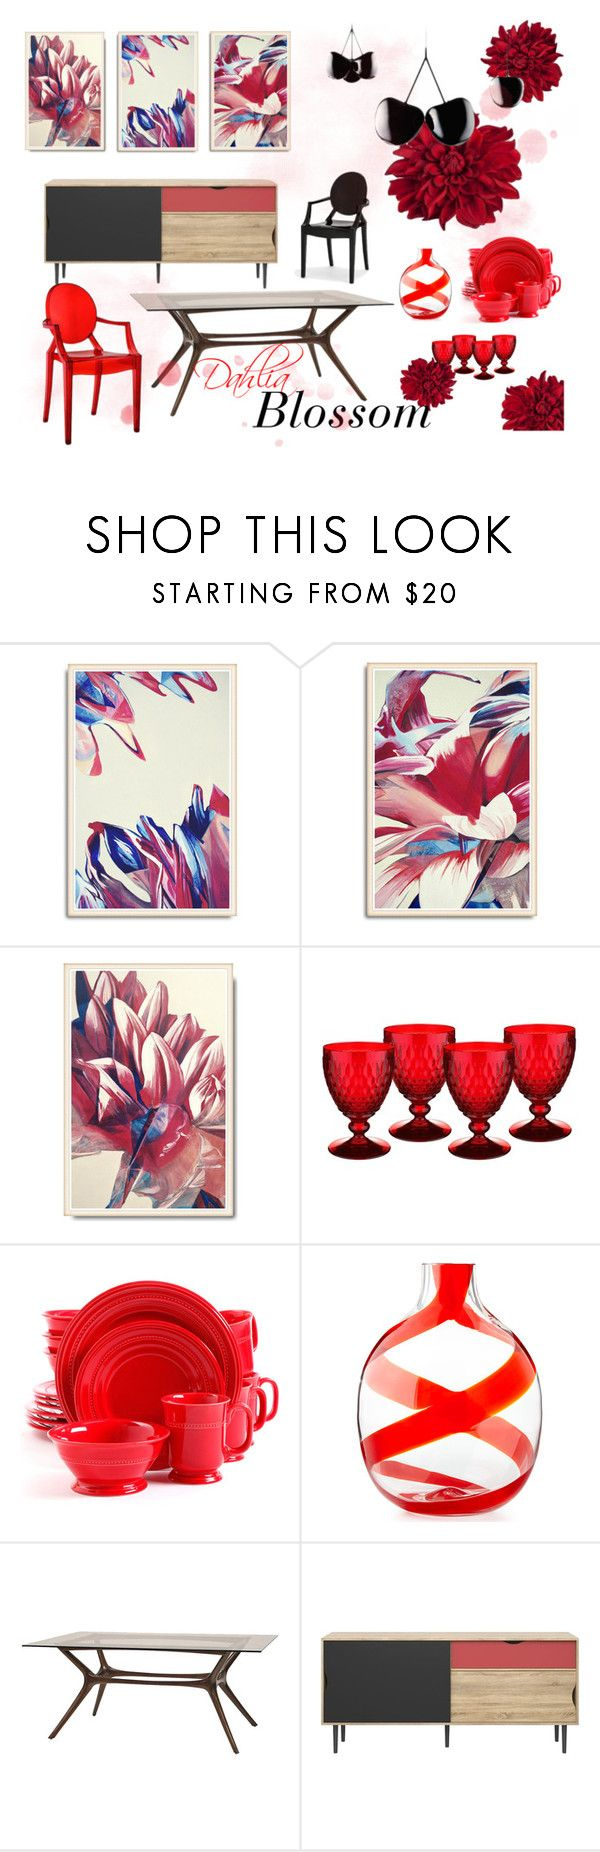 Dining room in red and black color palette. Inspired by Dahlia flowers. Original floral gallery wall in red with blue accents.  #diningroom #wallart #painting #gallerywall  Dahlia Blossom Dining Room by kacix on Polyvore featuring interior, interiors, interior design, home, home decor, interior decorating, Gibson, Villeroy & Boch, Carlo Moretti and Nika